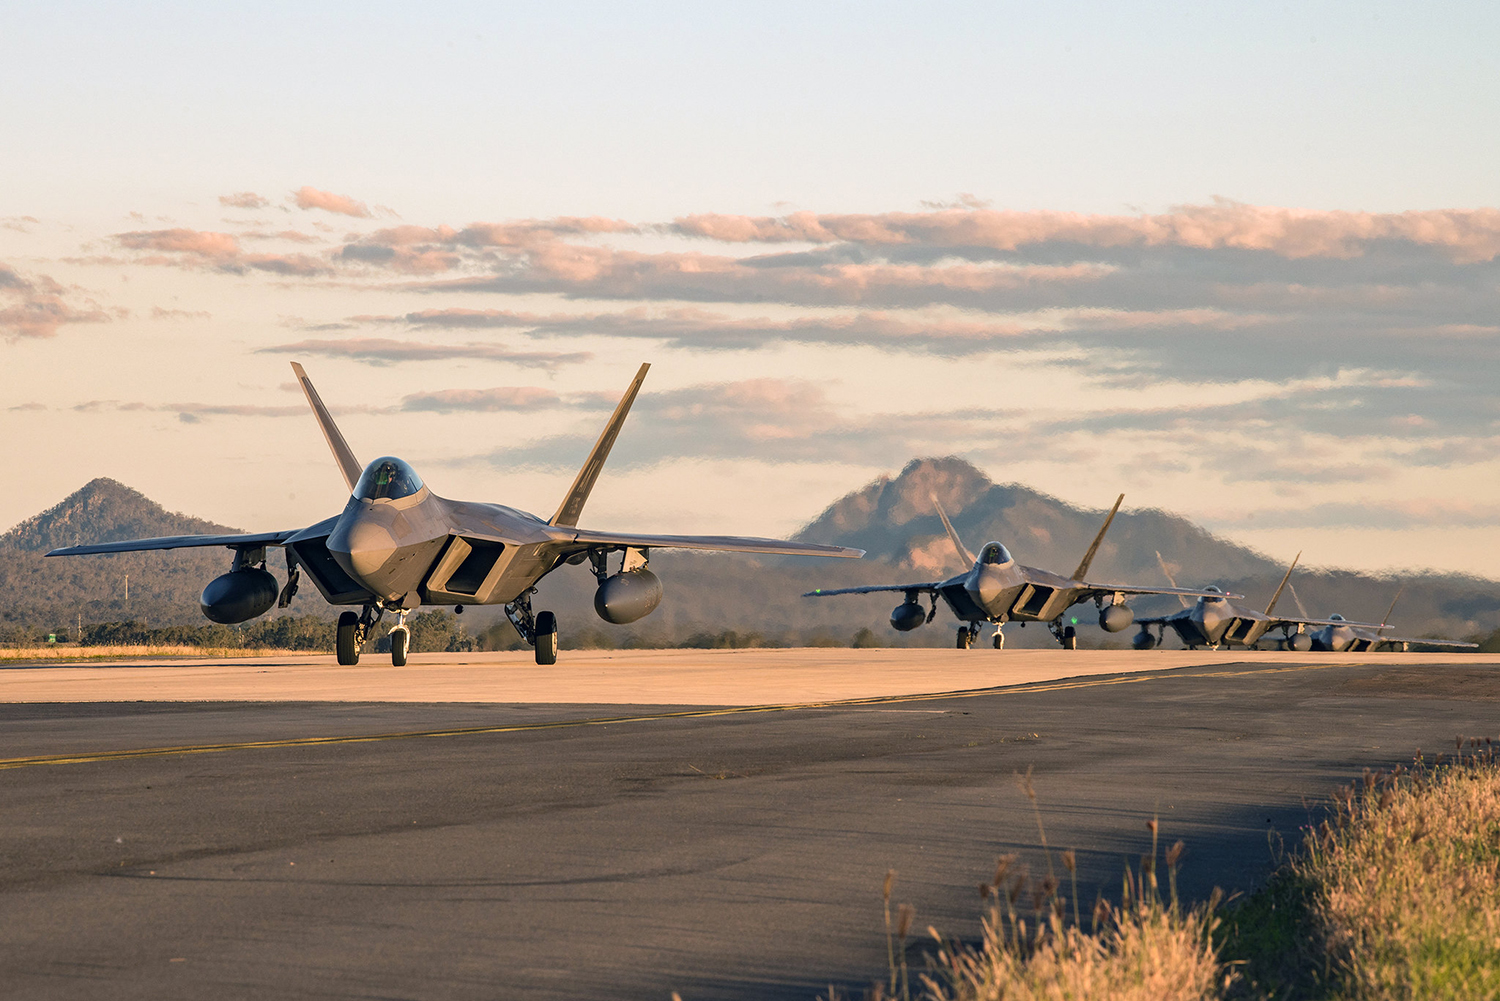 F-22 Raptors taxi to their parking location at the Royal Australian Air Force Base Amberley flightline for Talisman Sabre 19 on July 9. (Staff Sgt. Kyle Johnson/Air Force)